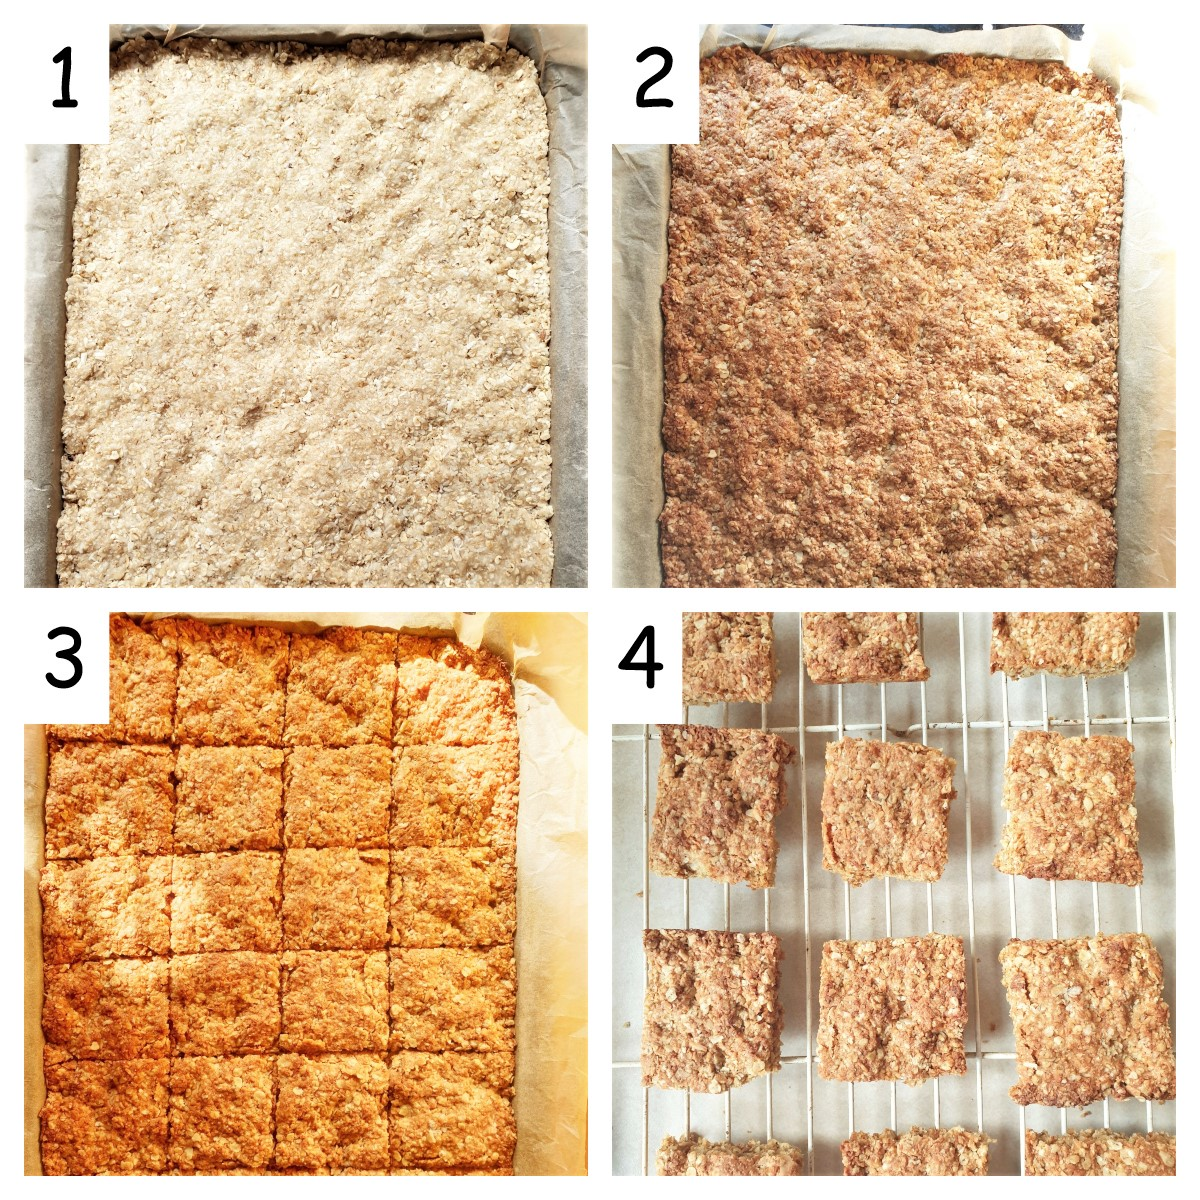 Collage of 4 images showing steps for baking crunchies.